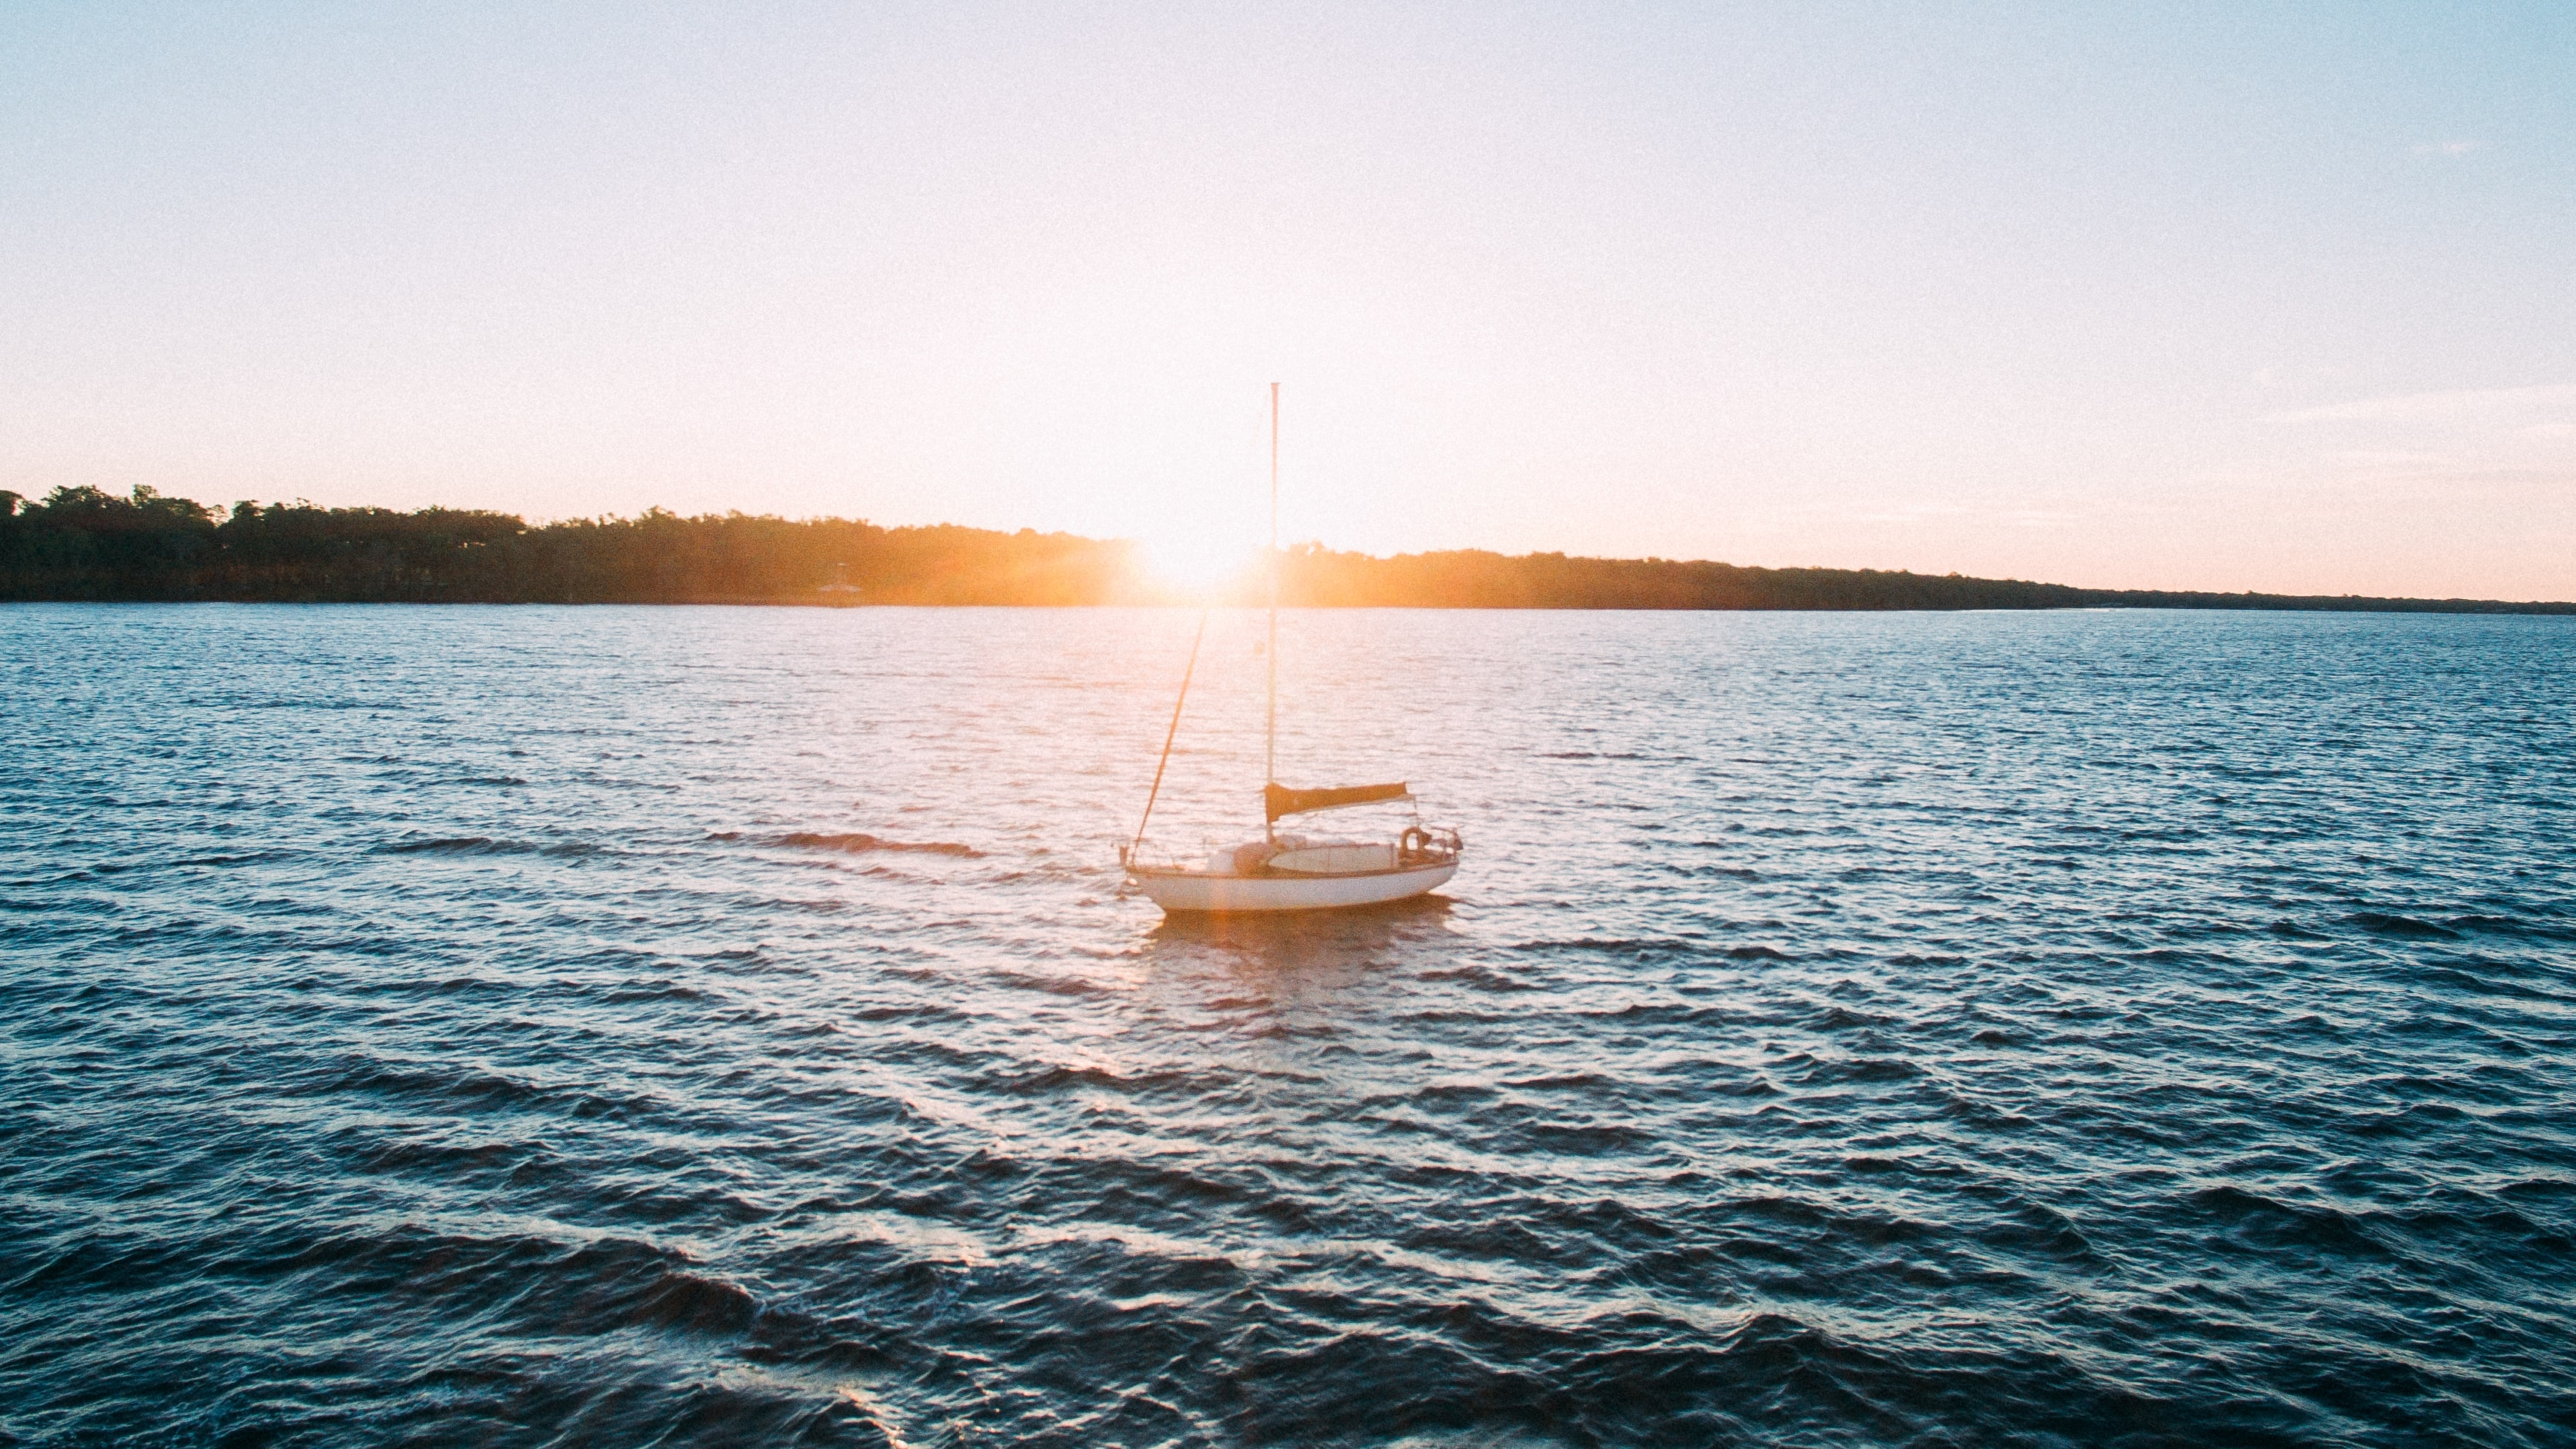 Sail boat on the ocean as sun rises above the forrest horizon